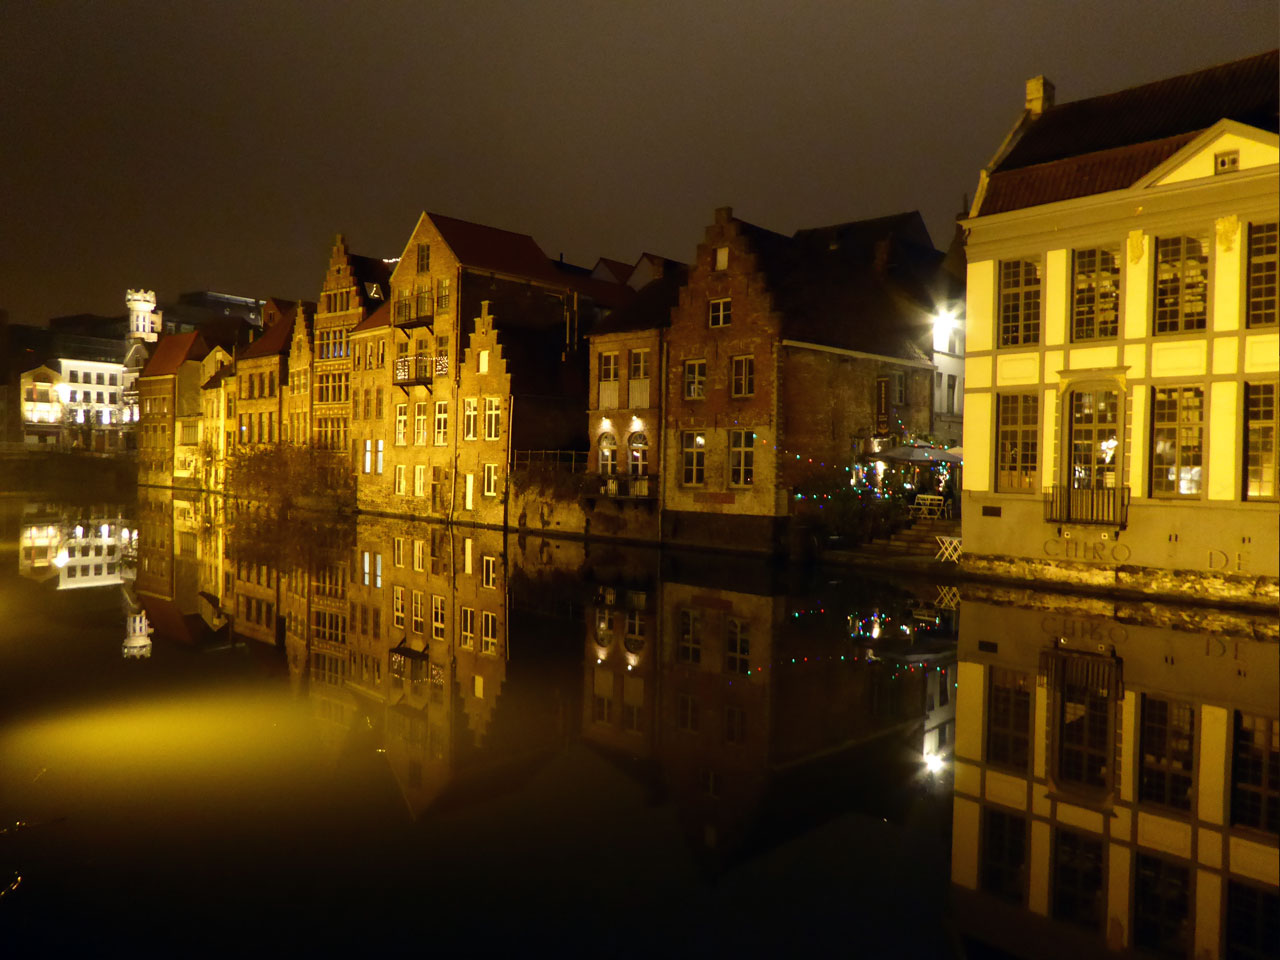 River Leie at night, Ghent